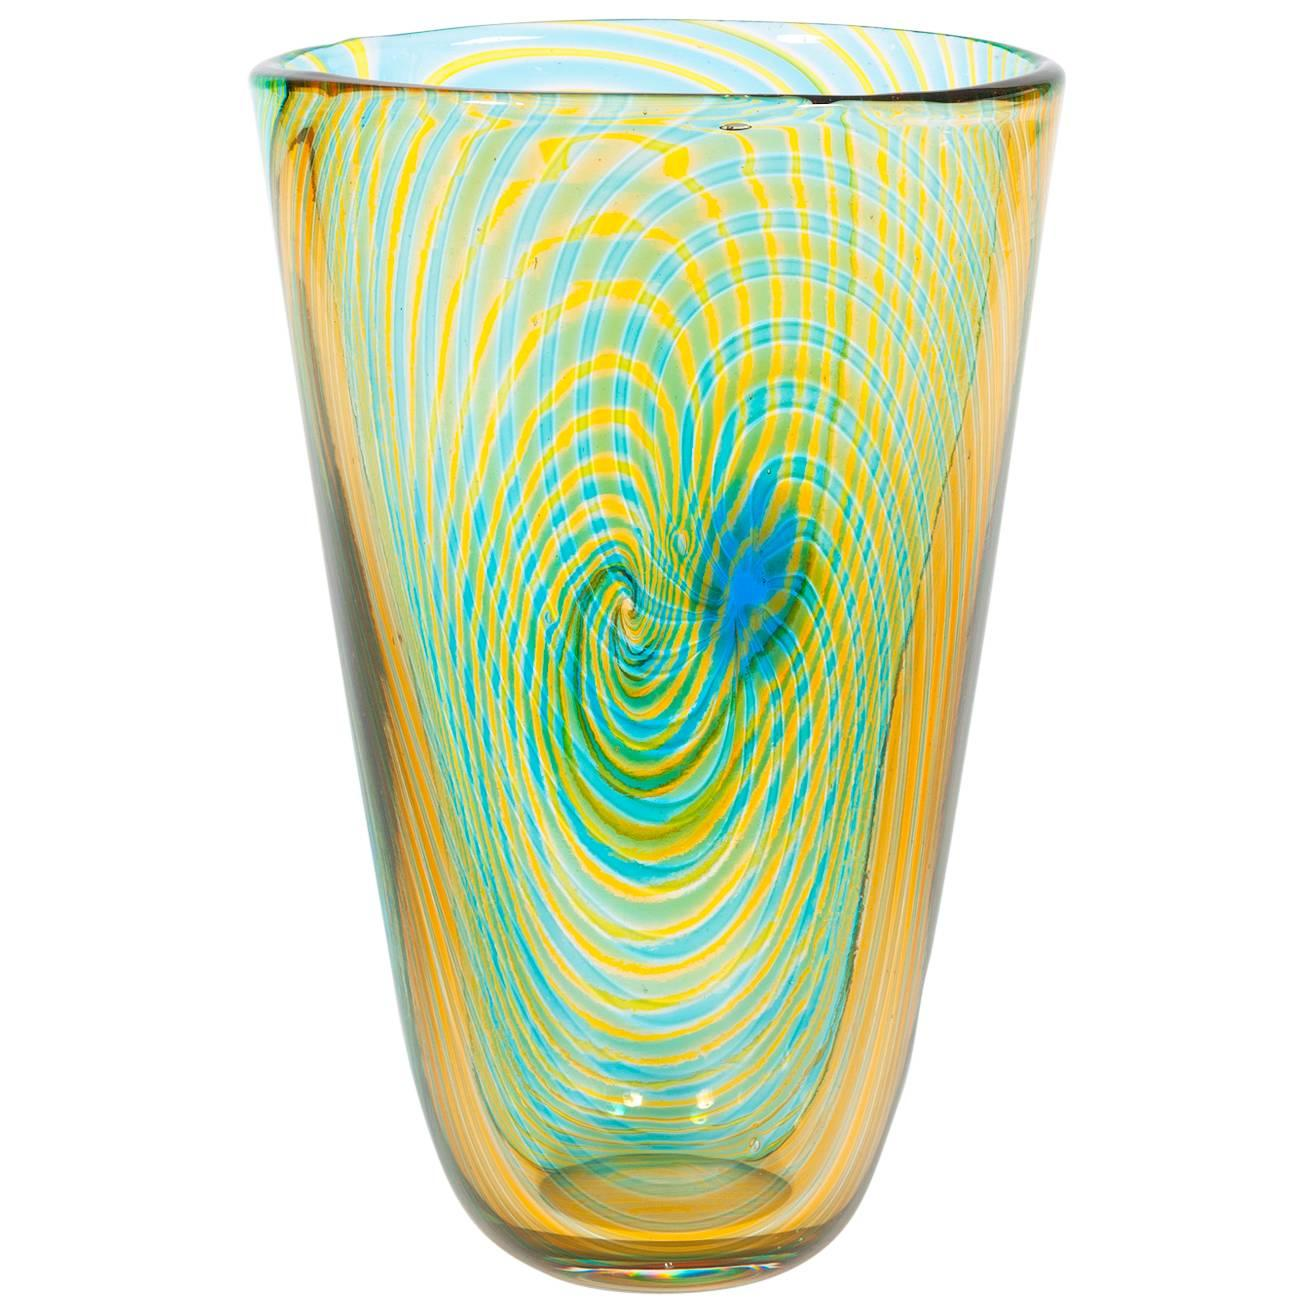 Striped Vase in blown Murano Glass Green Orange and light blue, 1990s Italy